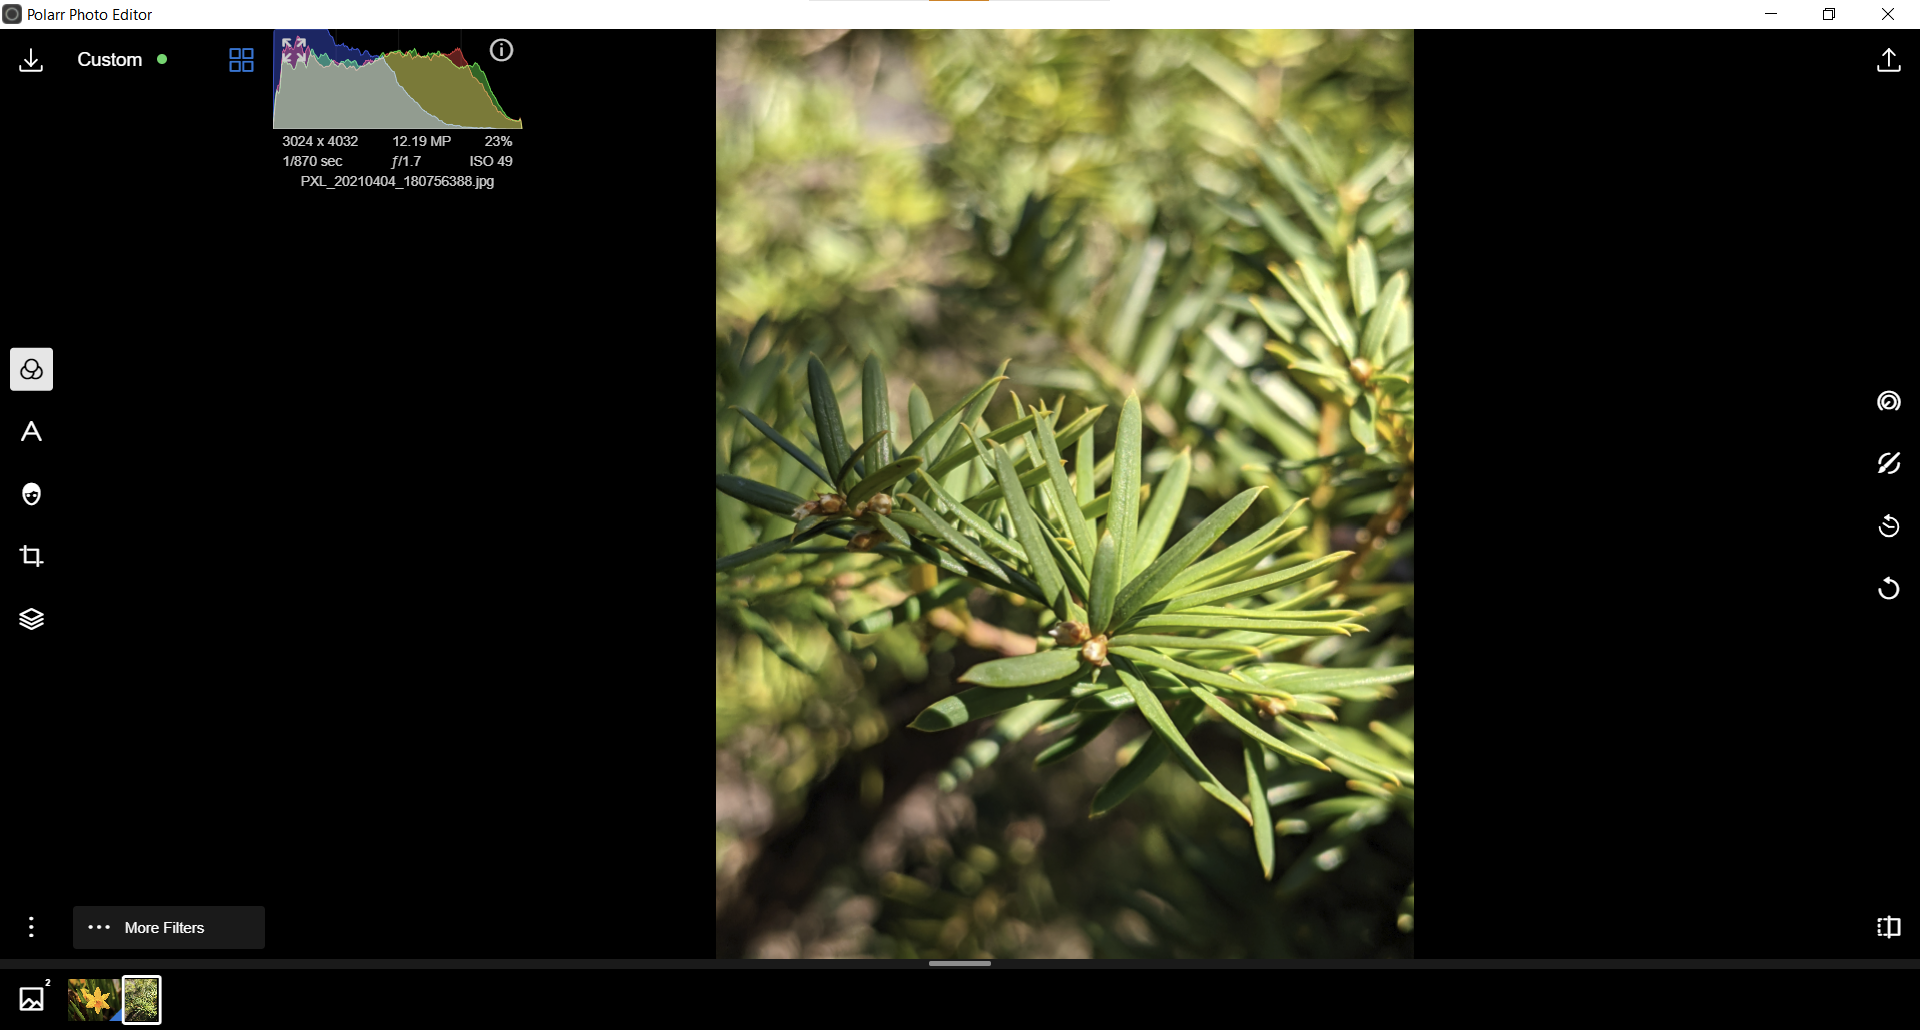 Making Polarr Filters/Presets